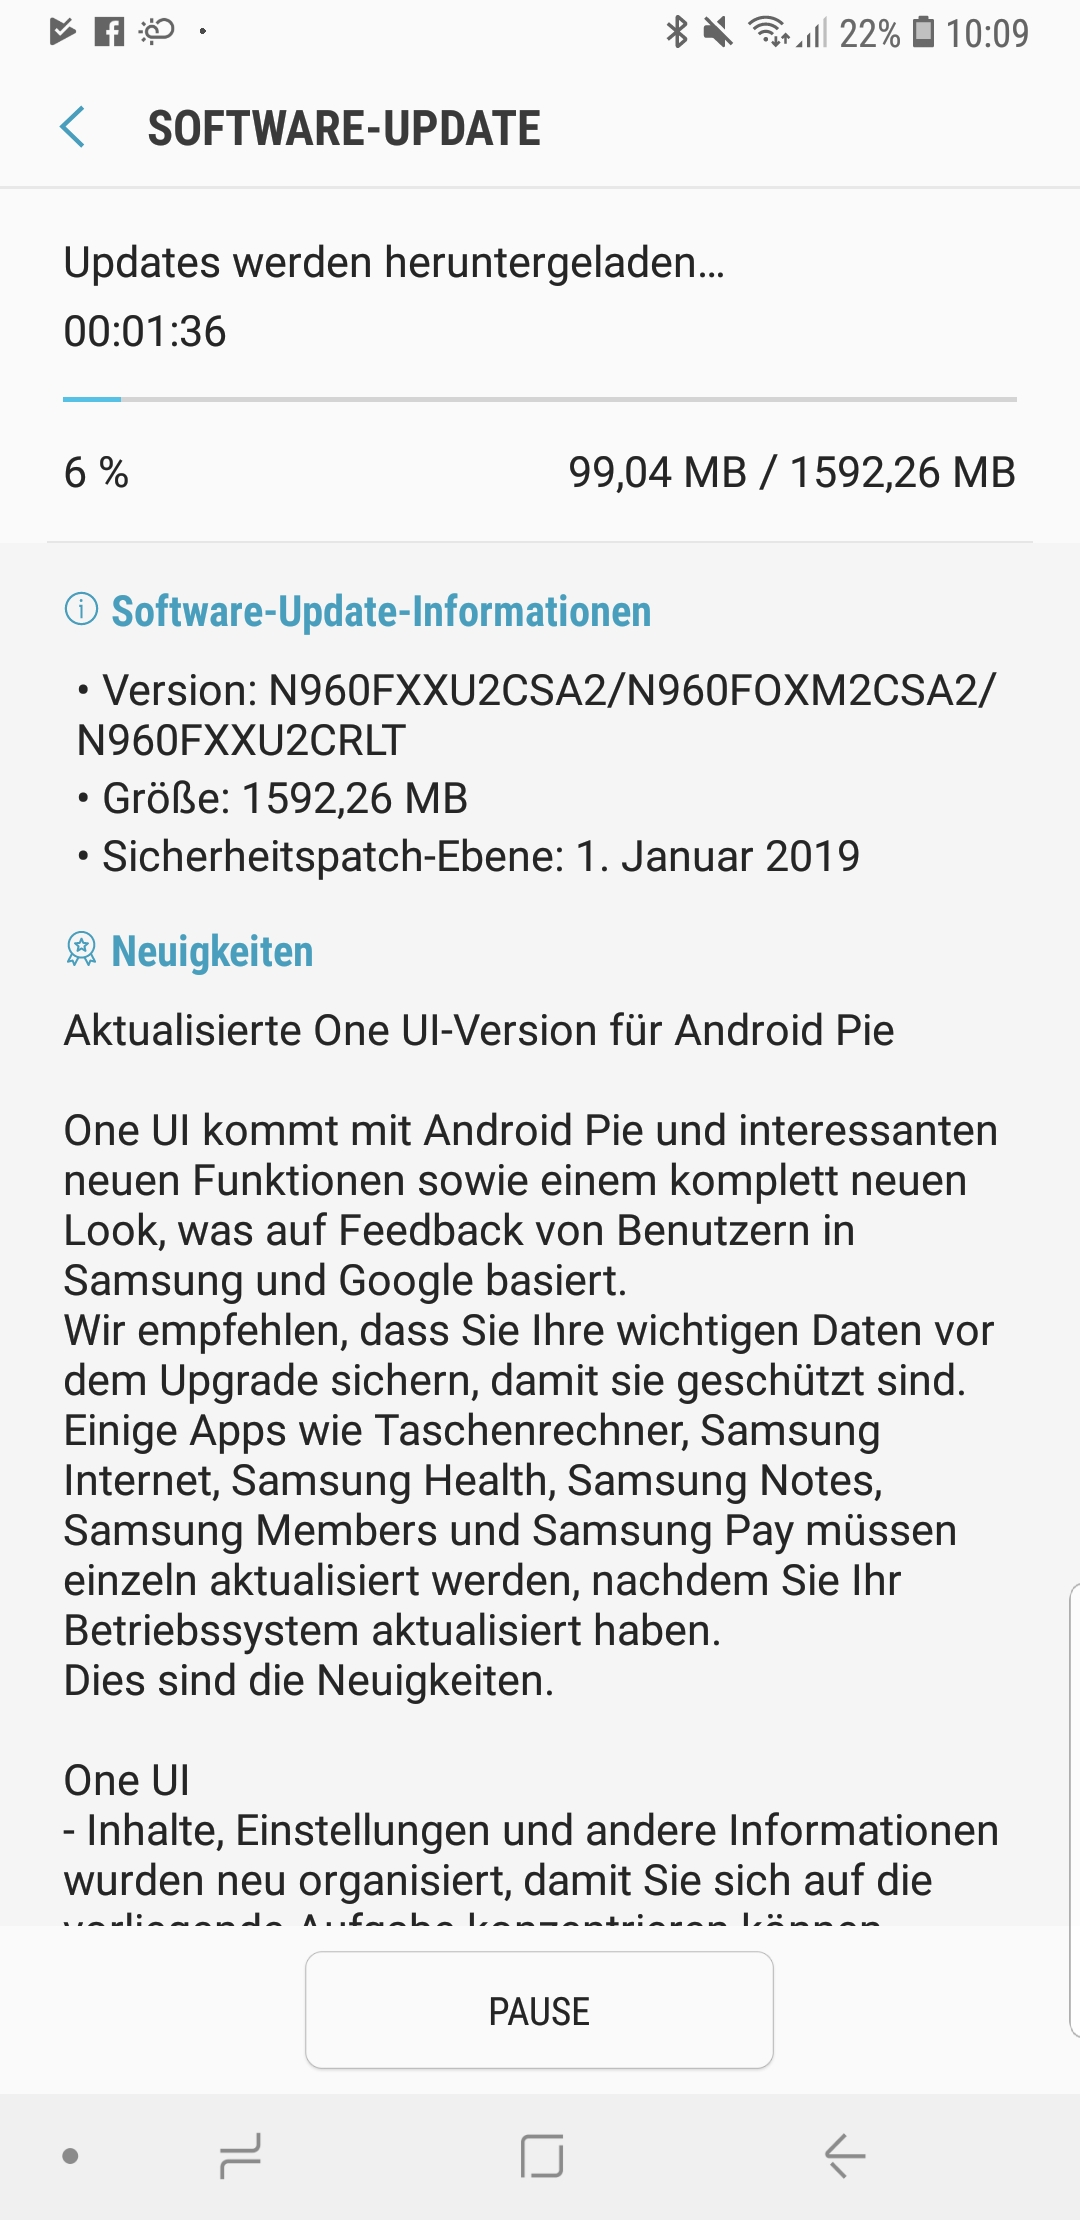 Galaxy Note 9 owners on Oreo can now update to Android Pie in